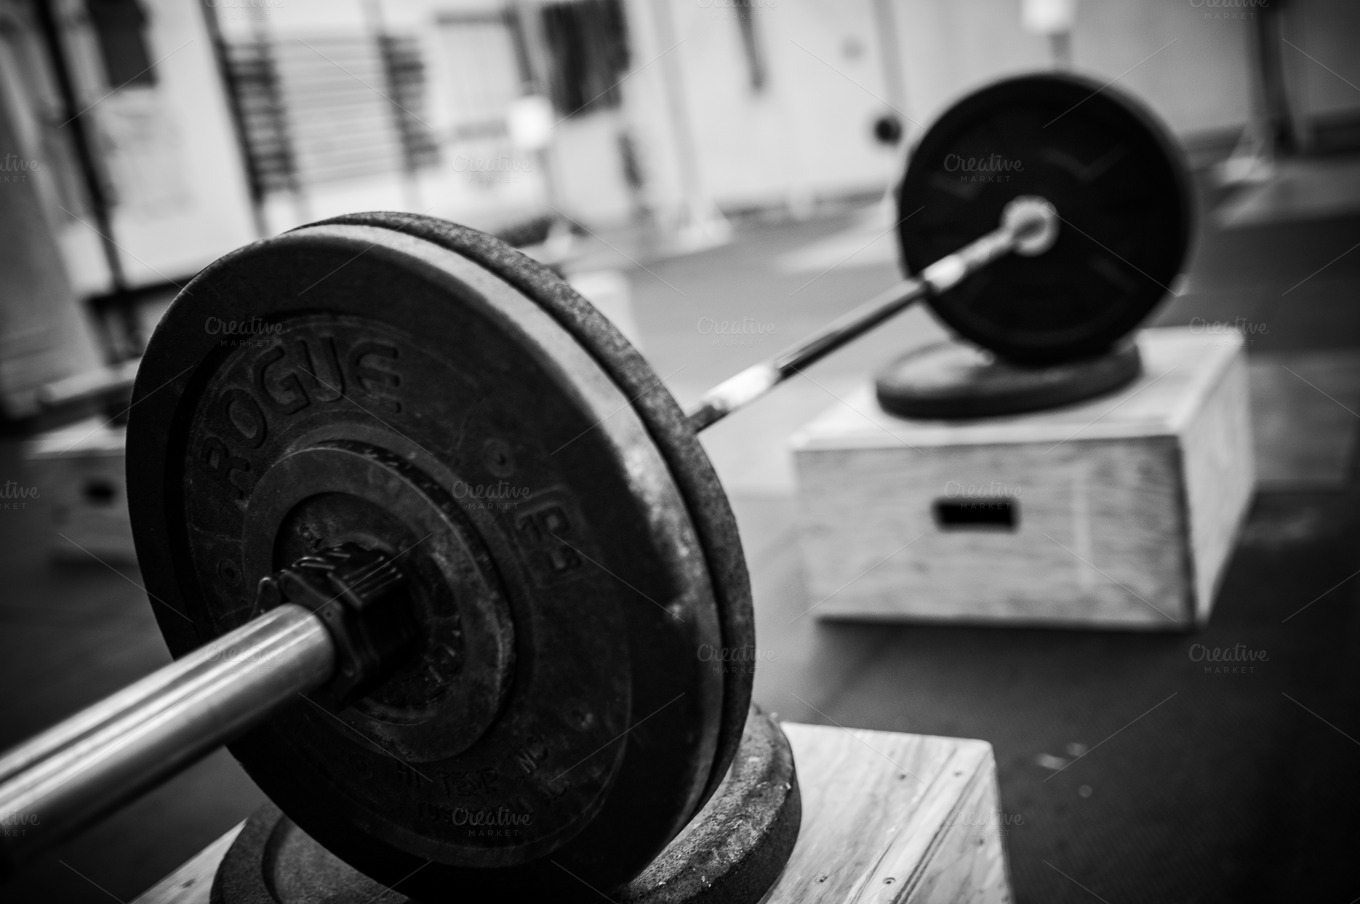 barbell photography - photo #14